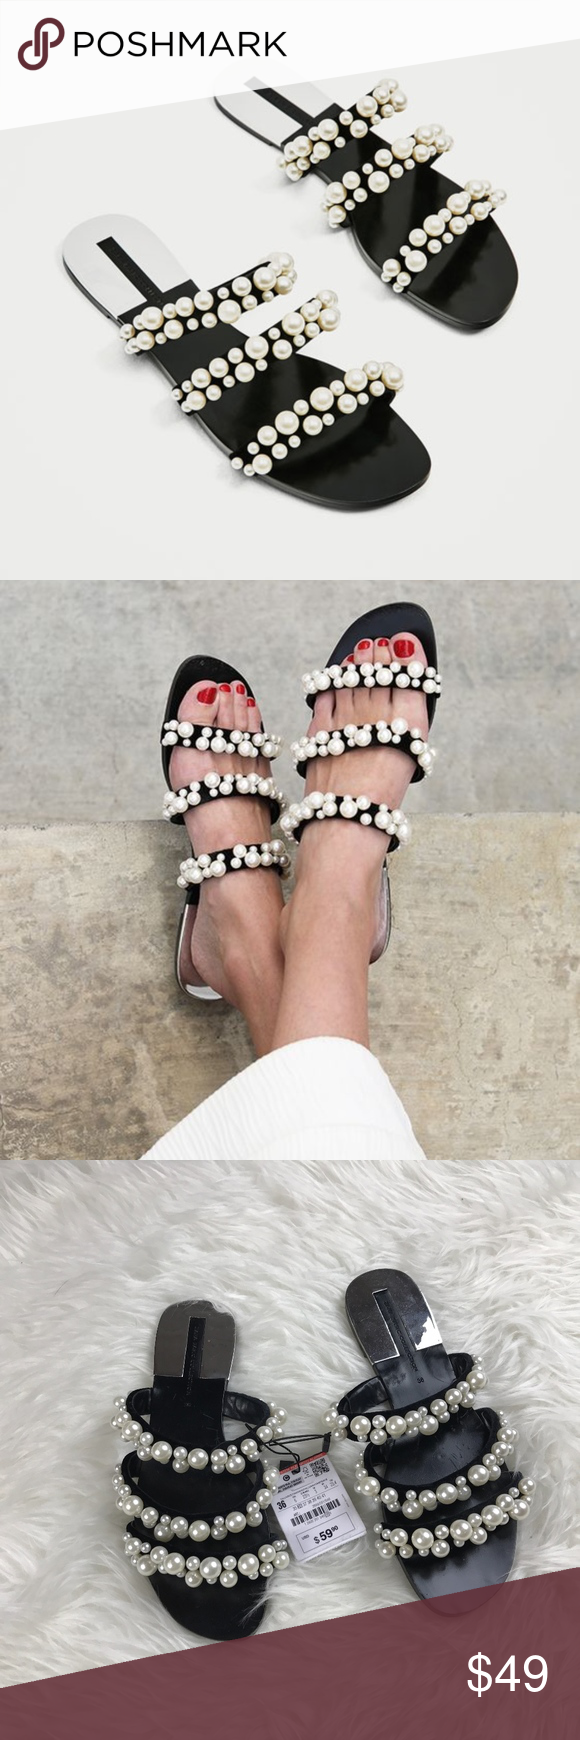 64a466e627f  Zara  Pearly Strappy Sandals Flat black sandals with three straps. Pearly  detail on the straps. Laminated silver piece on the sole. Some Scratches on  sole